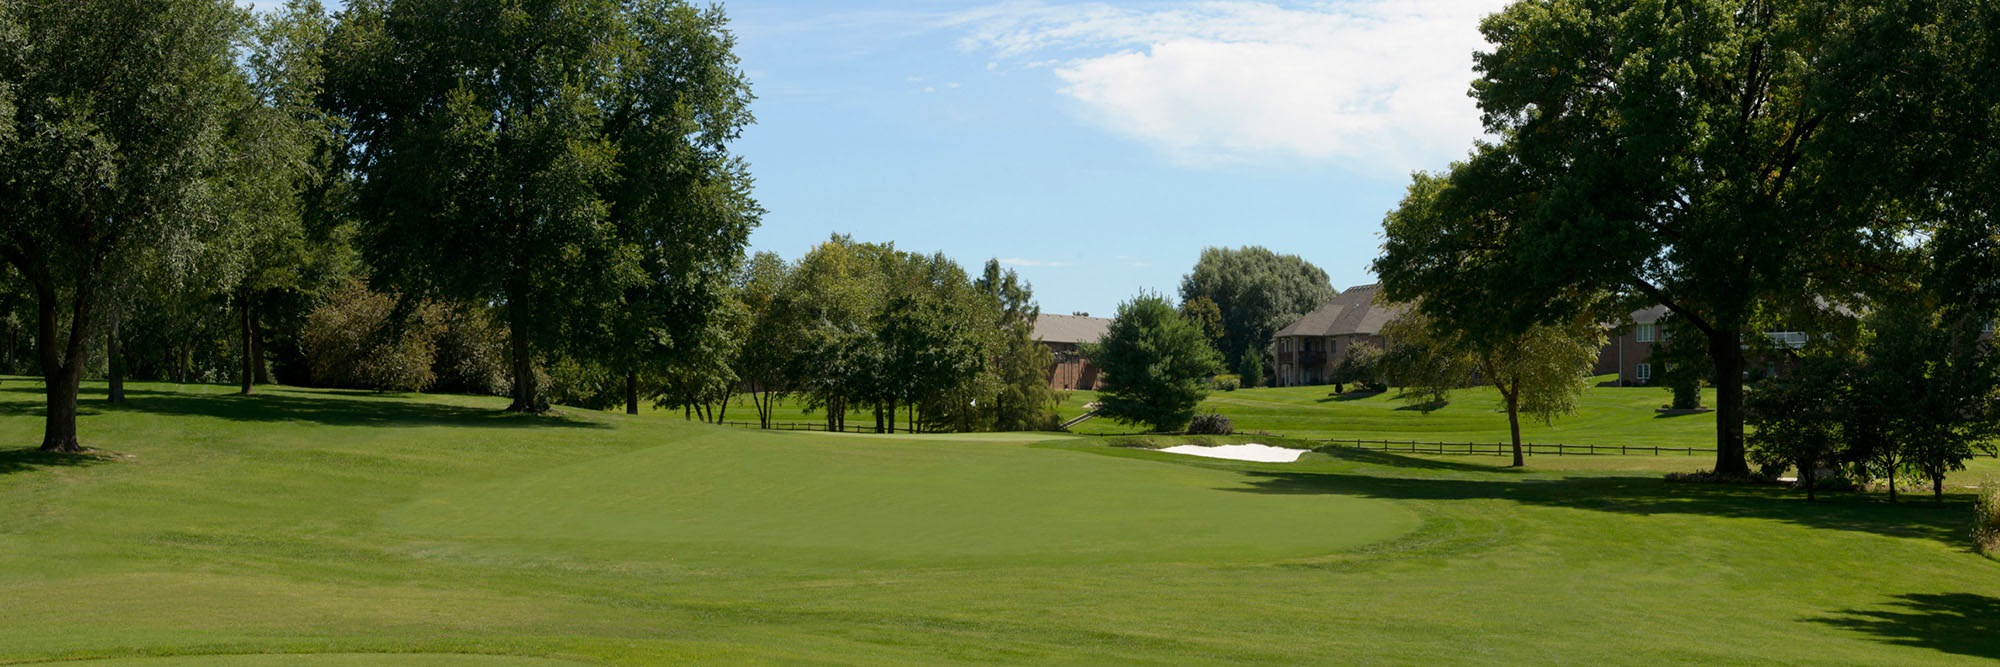 Golf Course Image - Twin Oaks Country Club No. 4